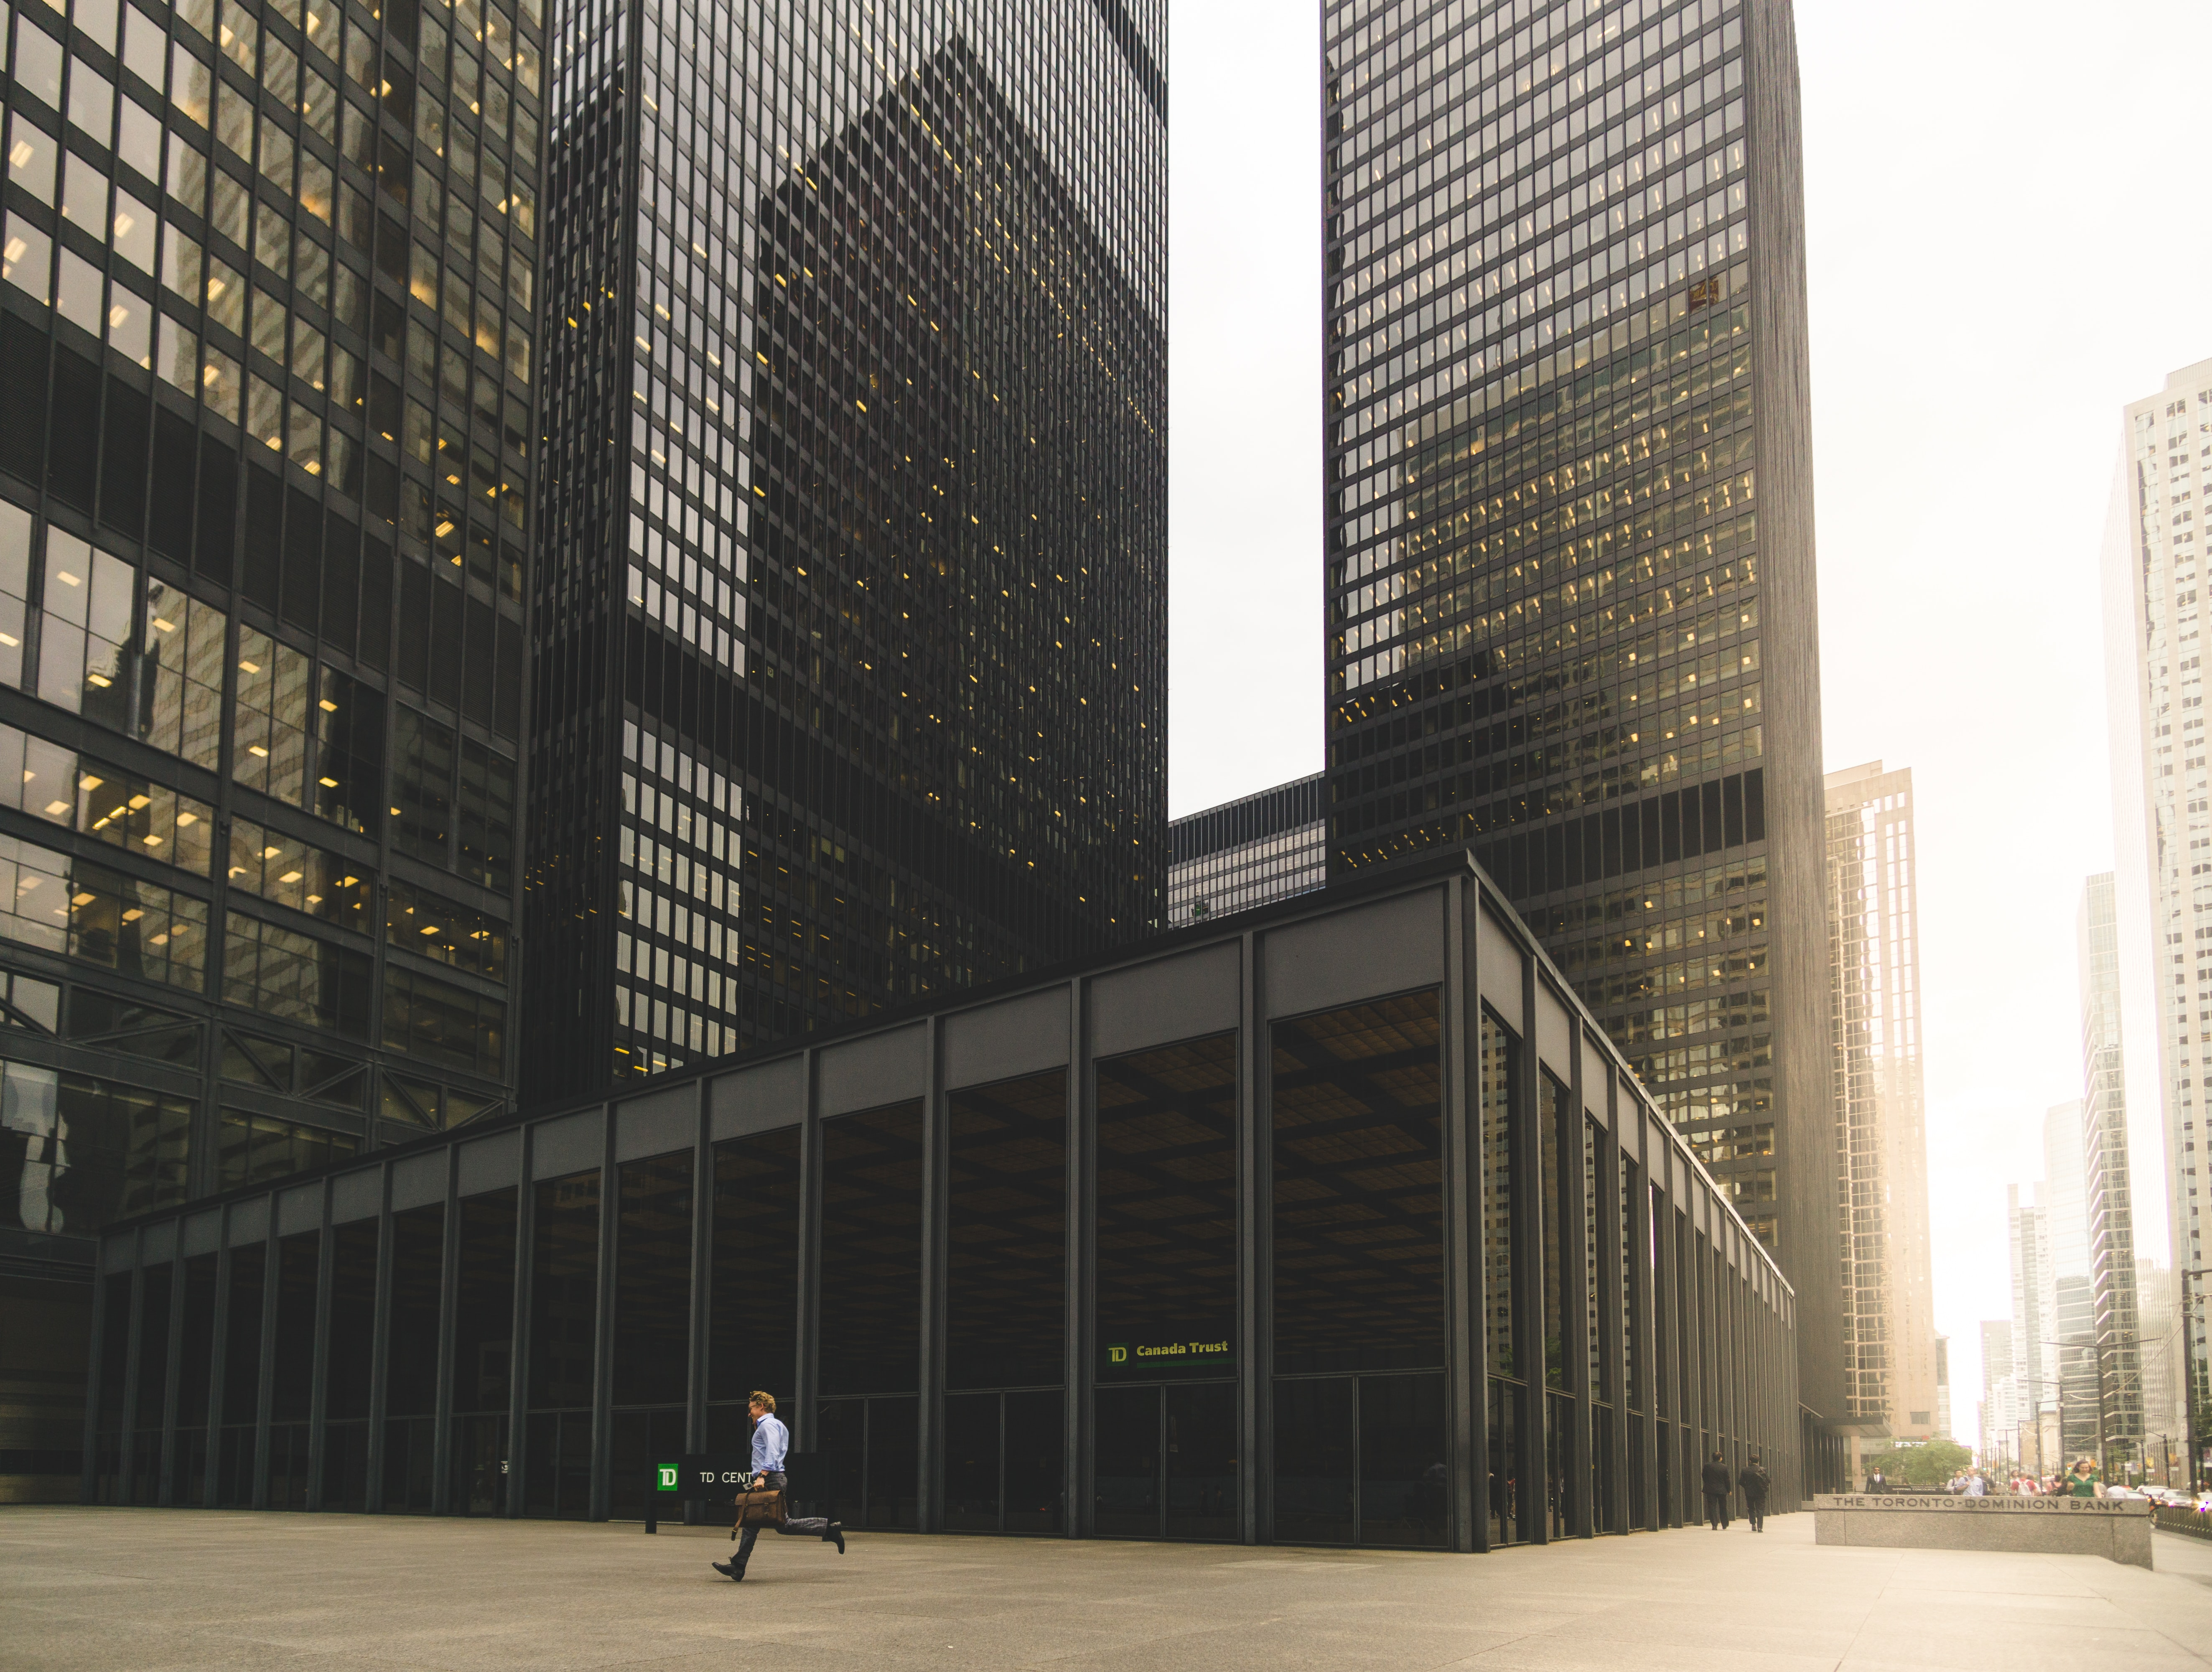 A man with a leather suitcase running near an office building